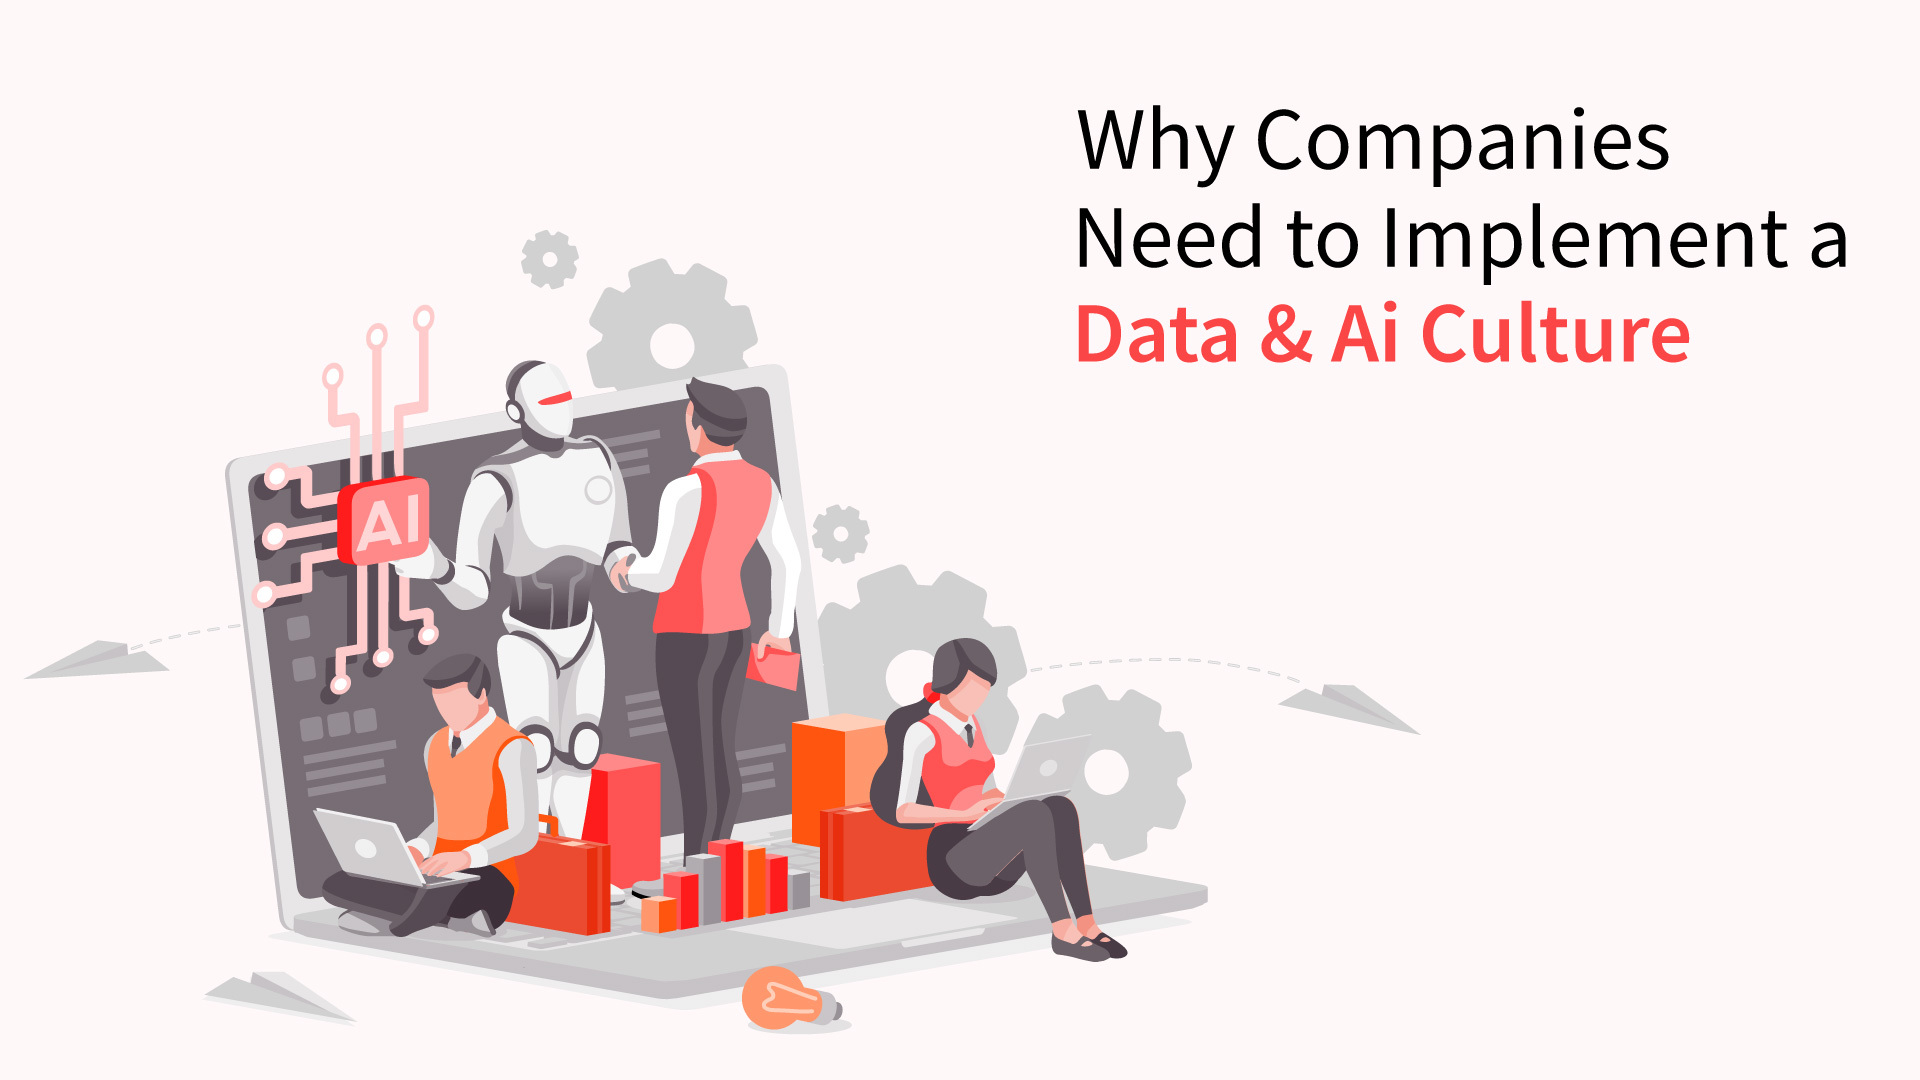 Implementing a data and AI culture